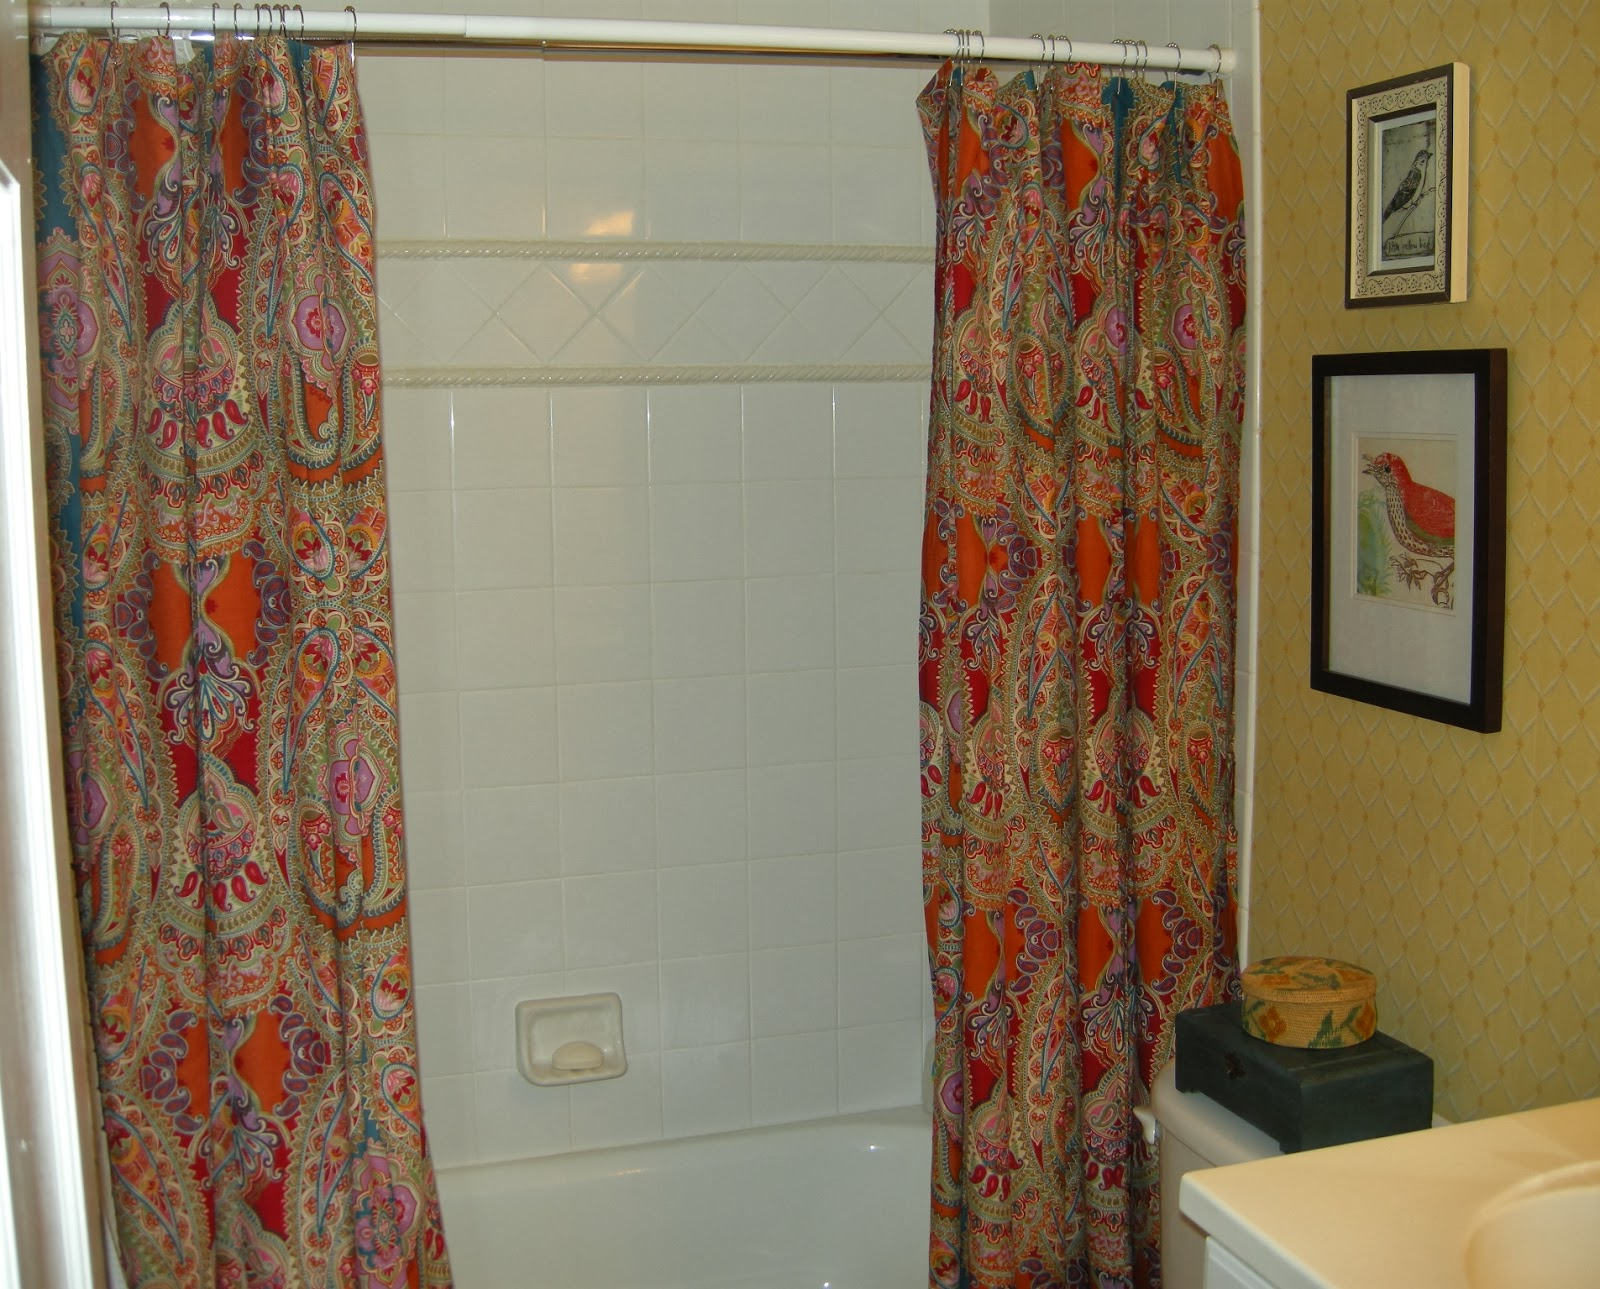 Cooking + Praying: Shower curtain festival